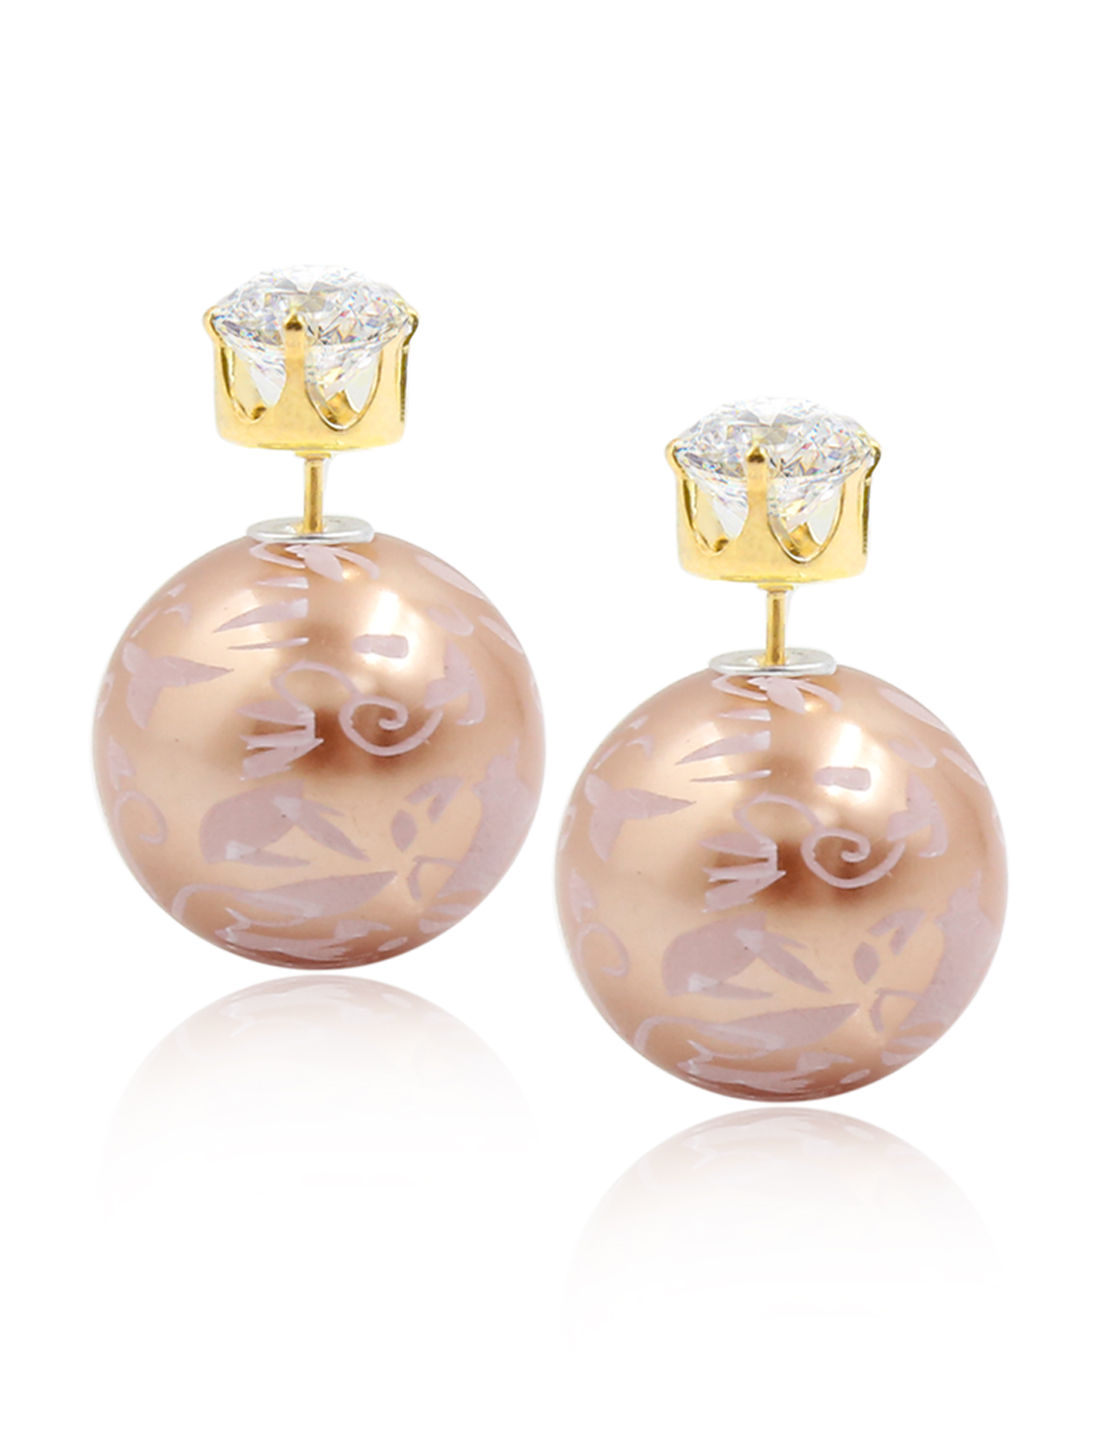 Fashion Women Elegant Double Sides Zircon Flower Pattern Ball Earrings Ear Stud 1 Pair Coffee